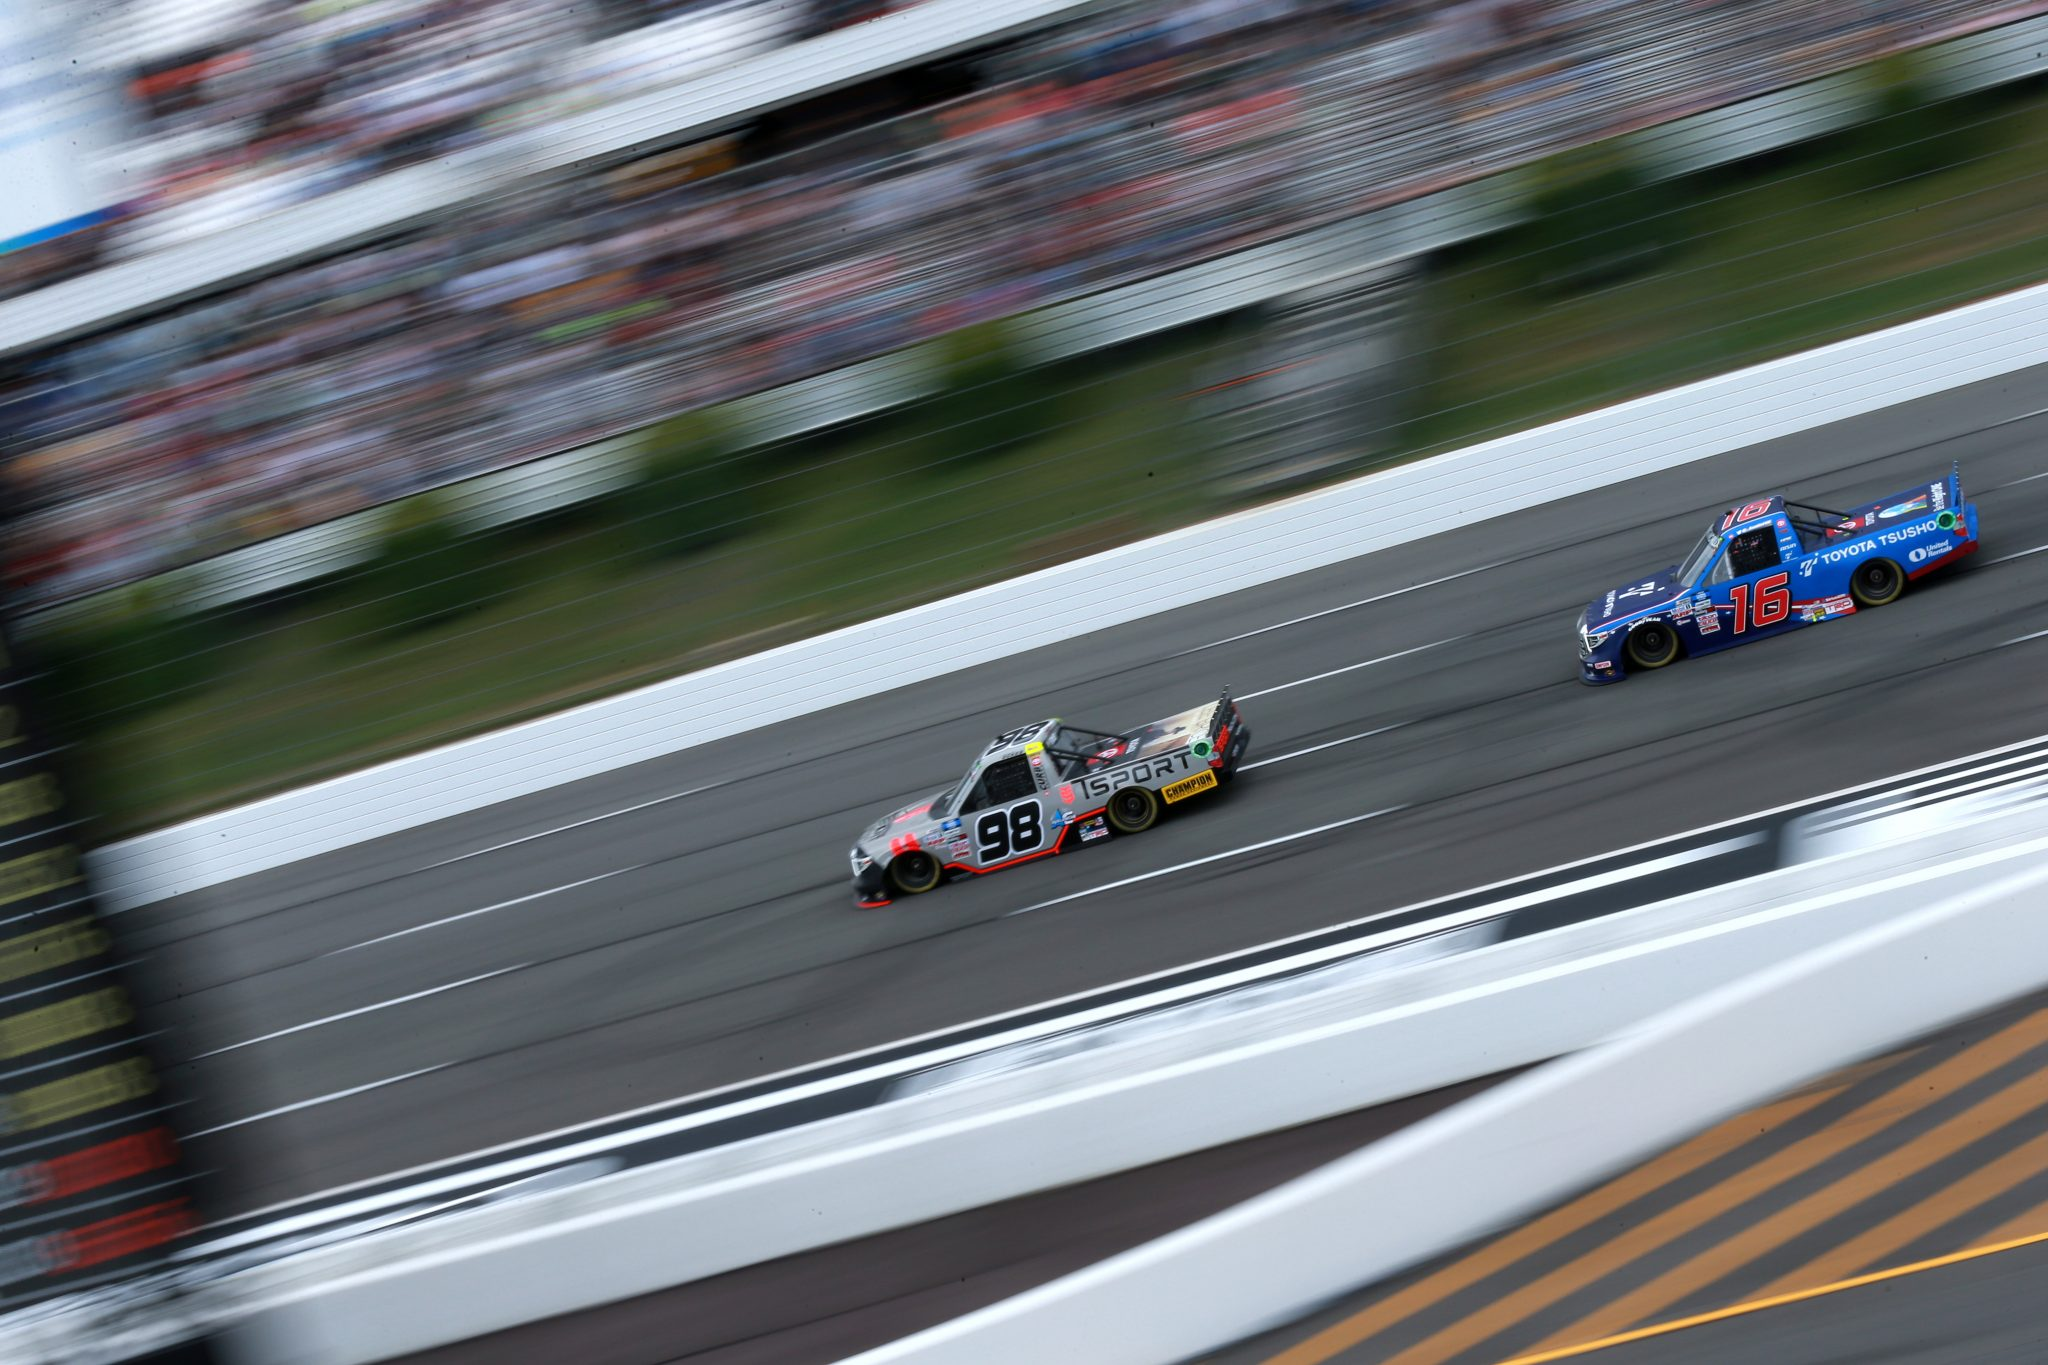 LONG POND, PENNSYLVANIA - JUNE 26: Christian Eckes, driver of the #98 Toyota, and Austin Hill, driver of the #16 Toyota Tsusho Toyota, race during the NASCAR Camping World Truck Series CRC Brakleen 150 at Pocono Raceway on June 26, 2021 in Long Pond, Pennsylvania. (Photo by Sean Gardner/Getty Images) | Getty Images